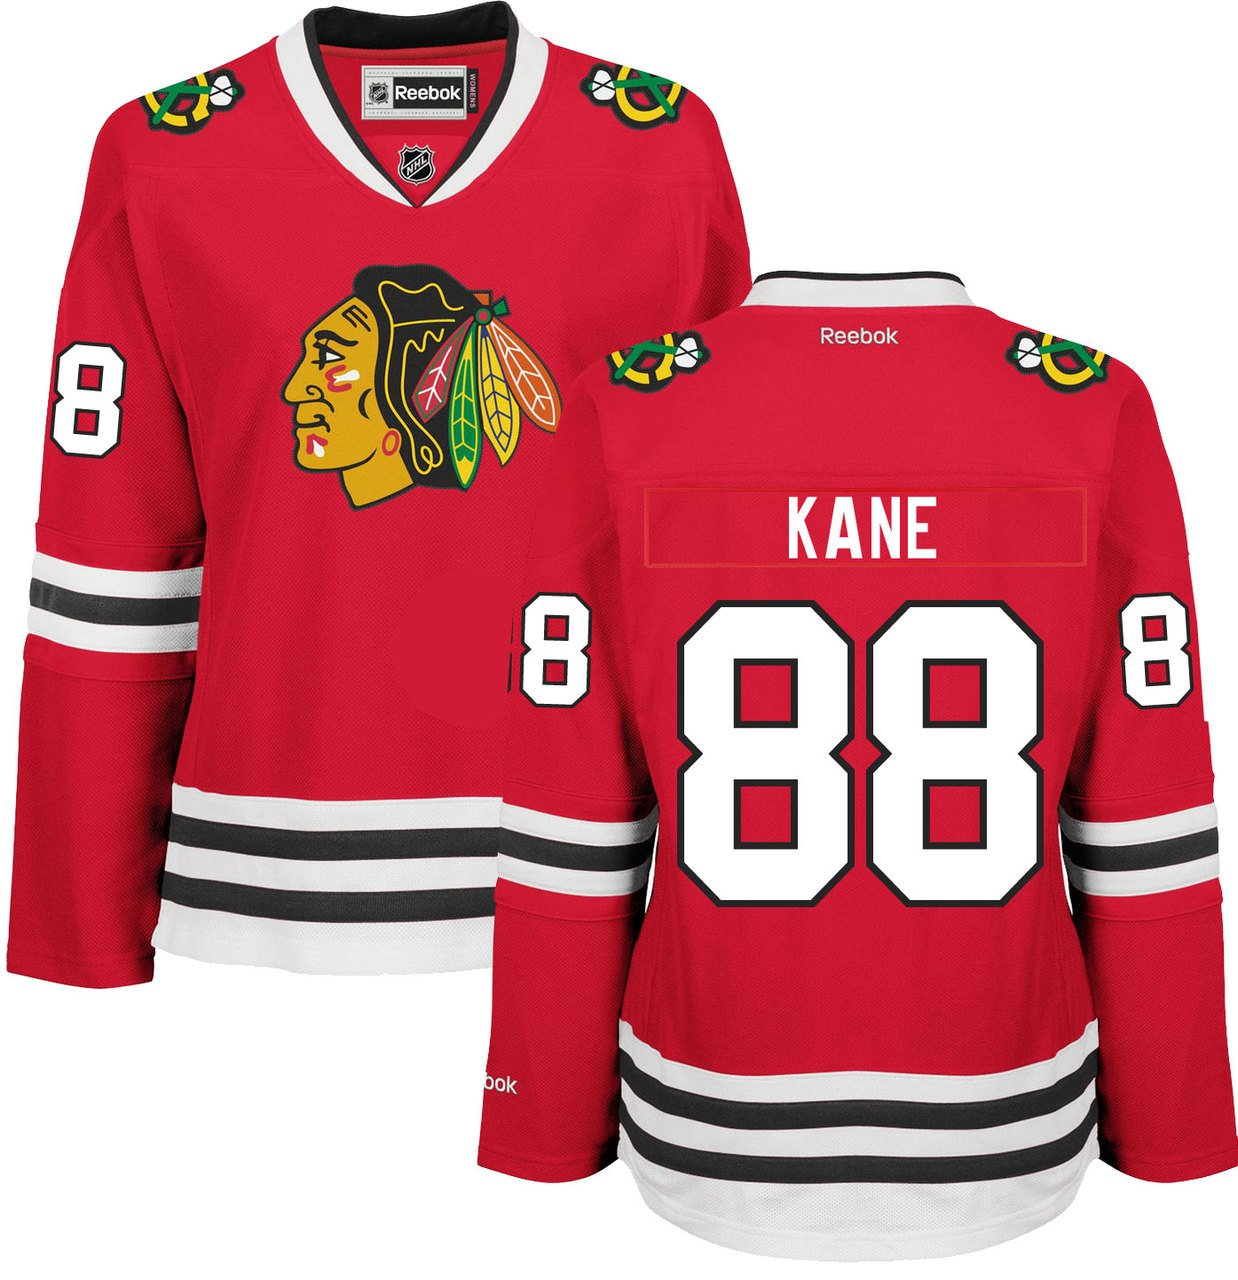 99a9a9a2f5d Amazon.com : Patrick Kane Chicago Blackhawks Home Red Women's Premier Jersey  by Reebok Select Size: Medium : Sports & Outdoors